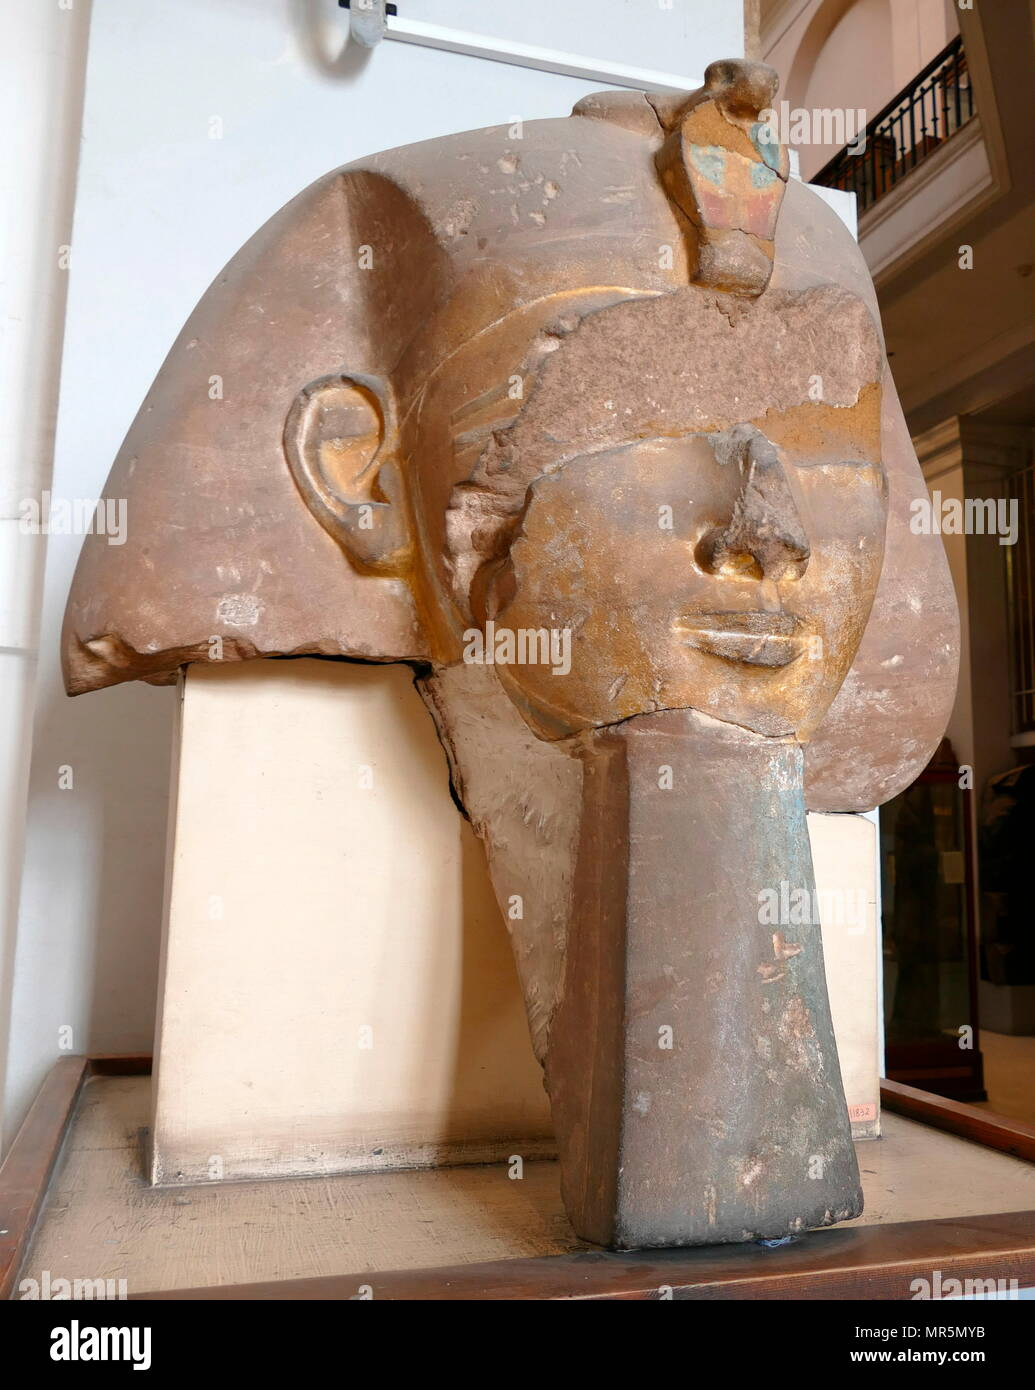 Stone head from a colossal statute of an 18th Dynasty Pharaoh, Possibly Queen Hatshepsut (1507–1458 BC), the fifth pharaoh of the Eighteenth Dynasty of Egypt. - Stock Image